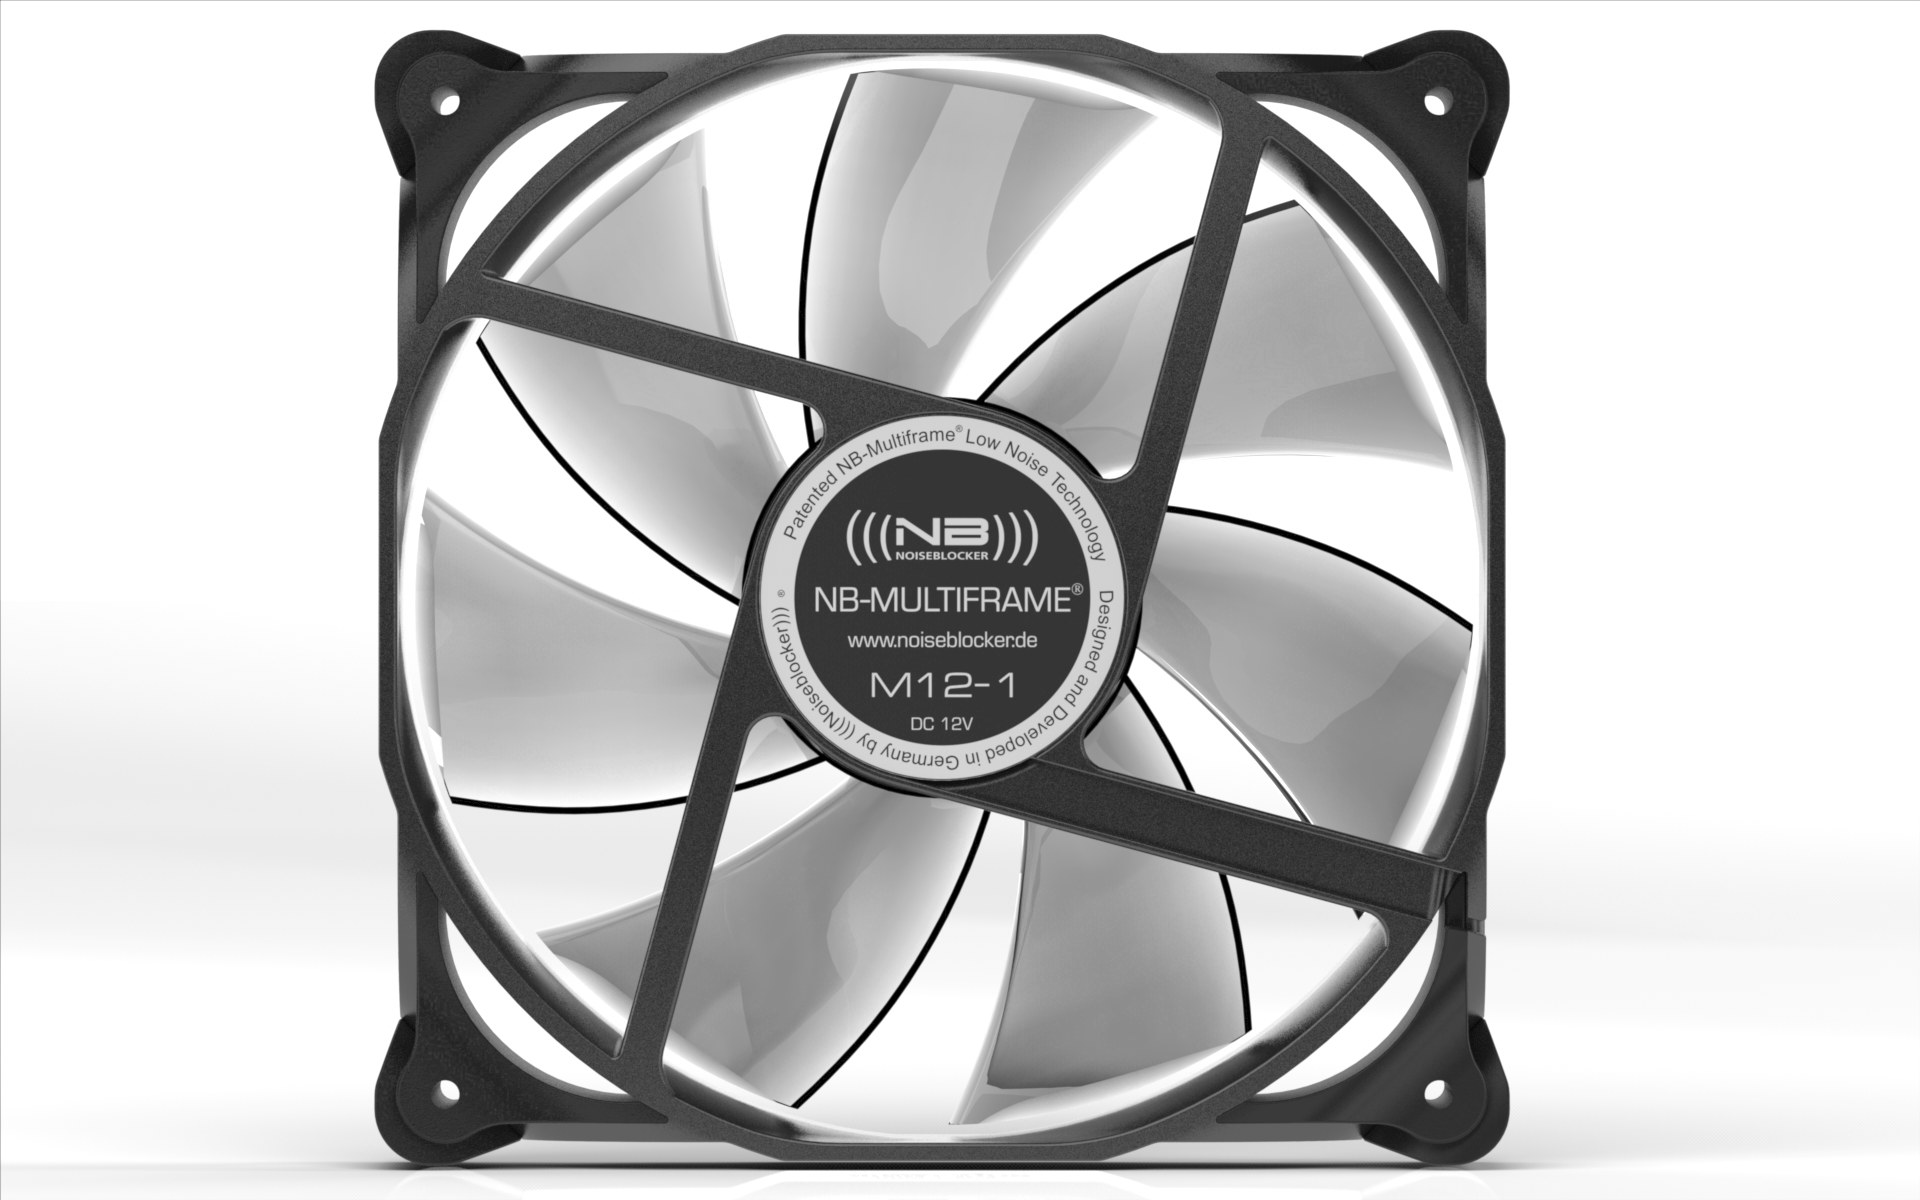 Noiseblocker Nb Multiframe S Series 120mm The G8 Electronics This Section Is Under Development We Offer A Standard Selection Of Especially Low Noise Fans In Sizes 80 X 25 Mm And 120 With Different Power Stages